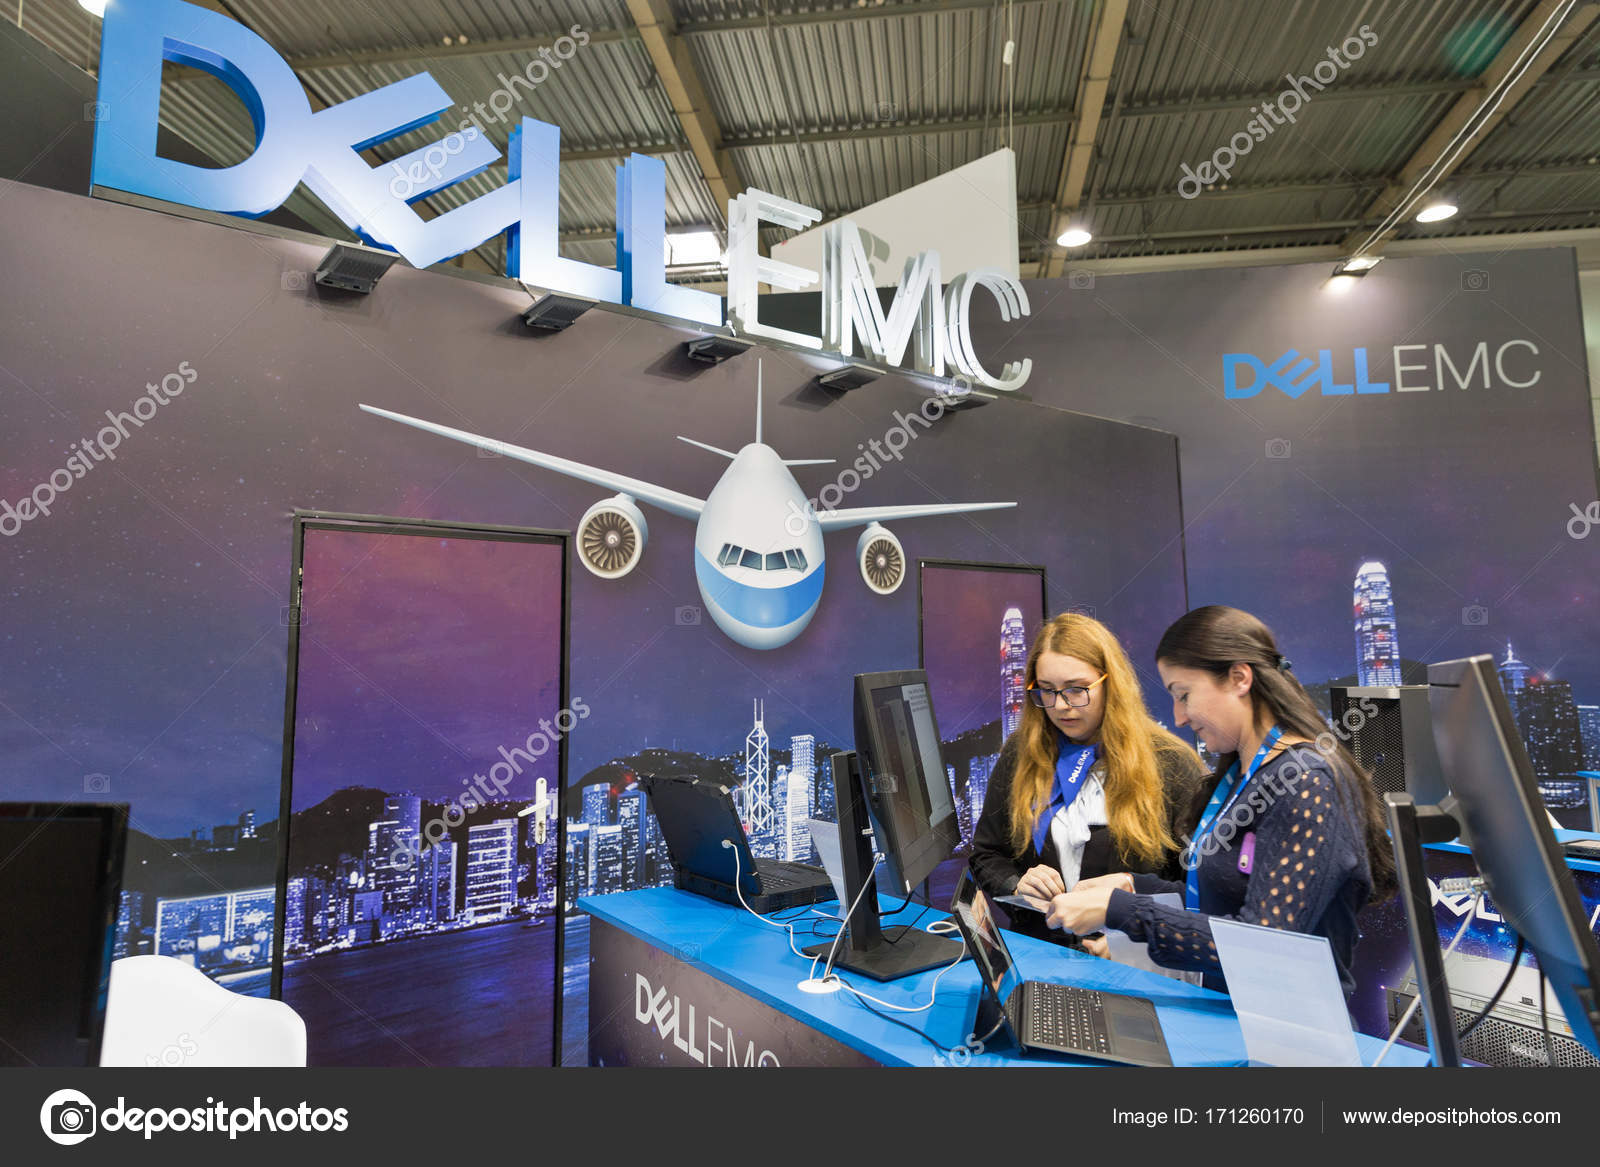 Dell Emc Booth During Cee 2017 In Kiev Ukraine Stock Editorial